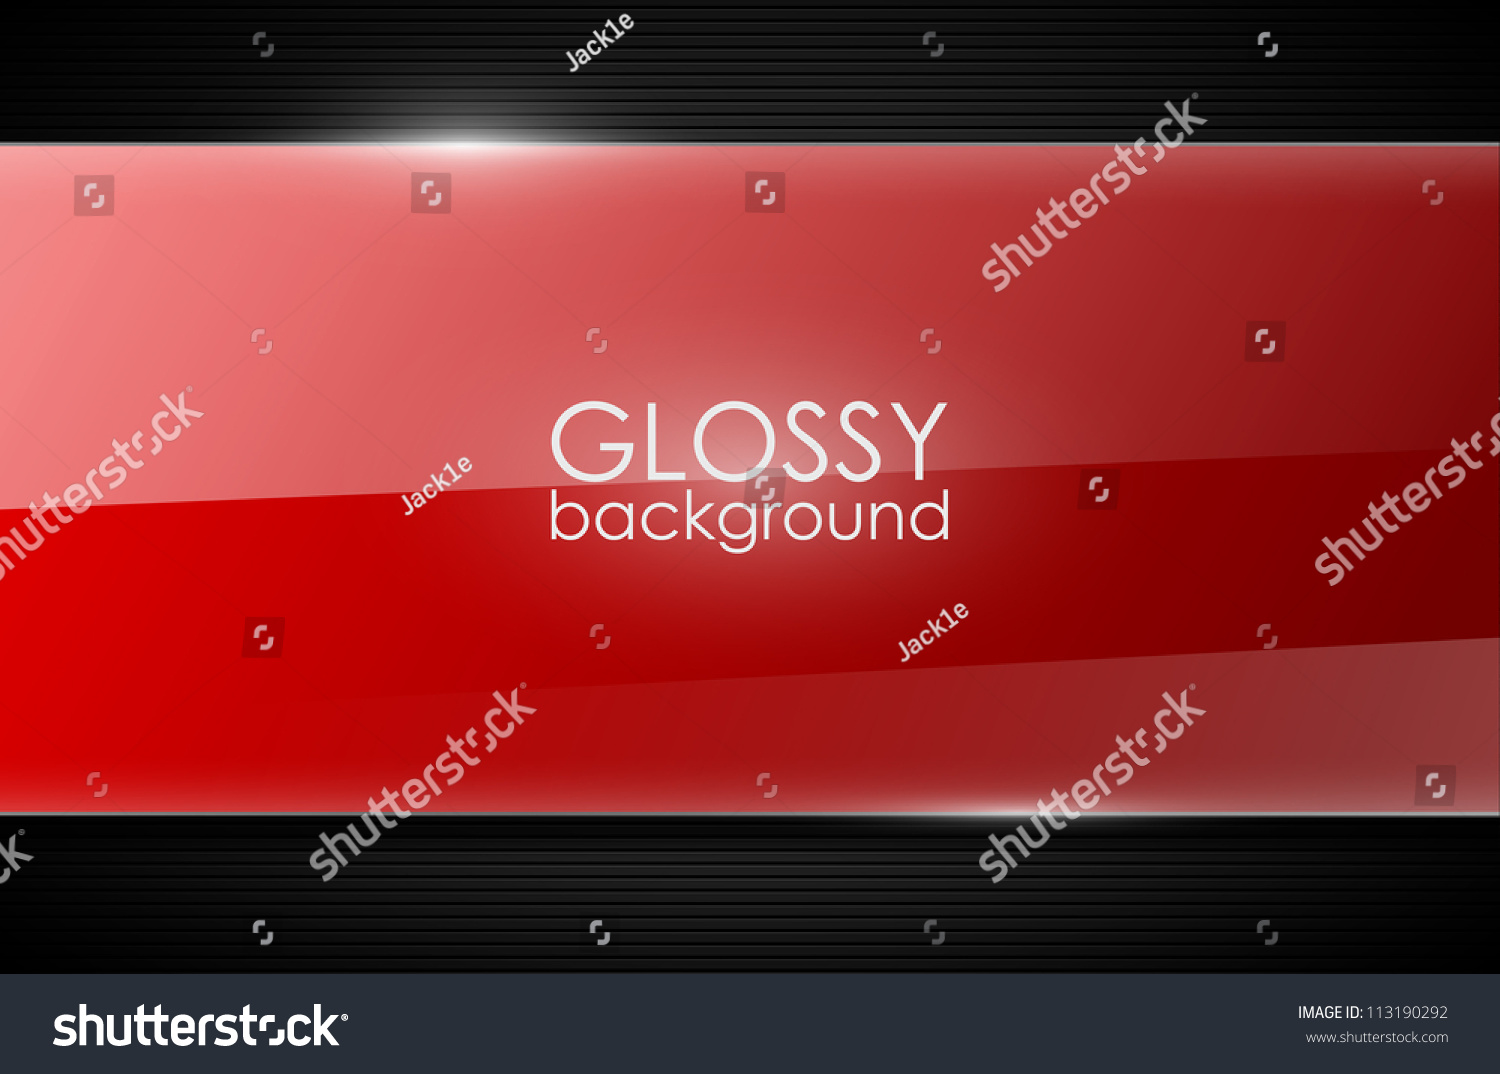 glossy background